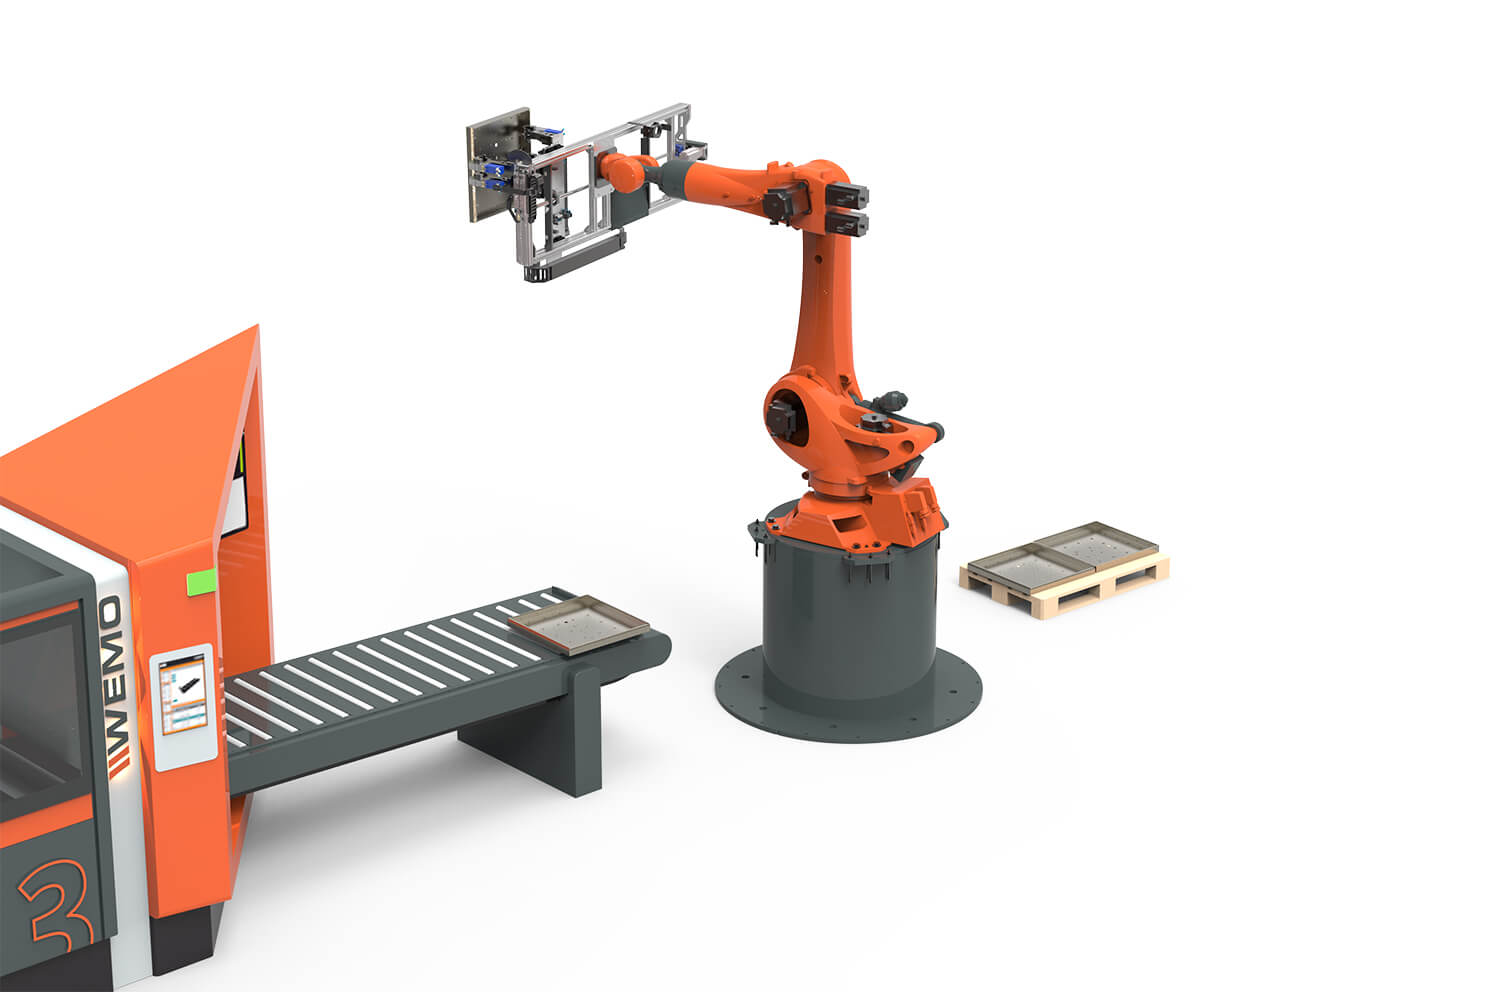 WEMO machines Robot arm automation solution